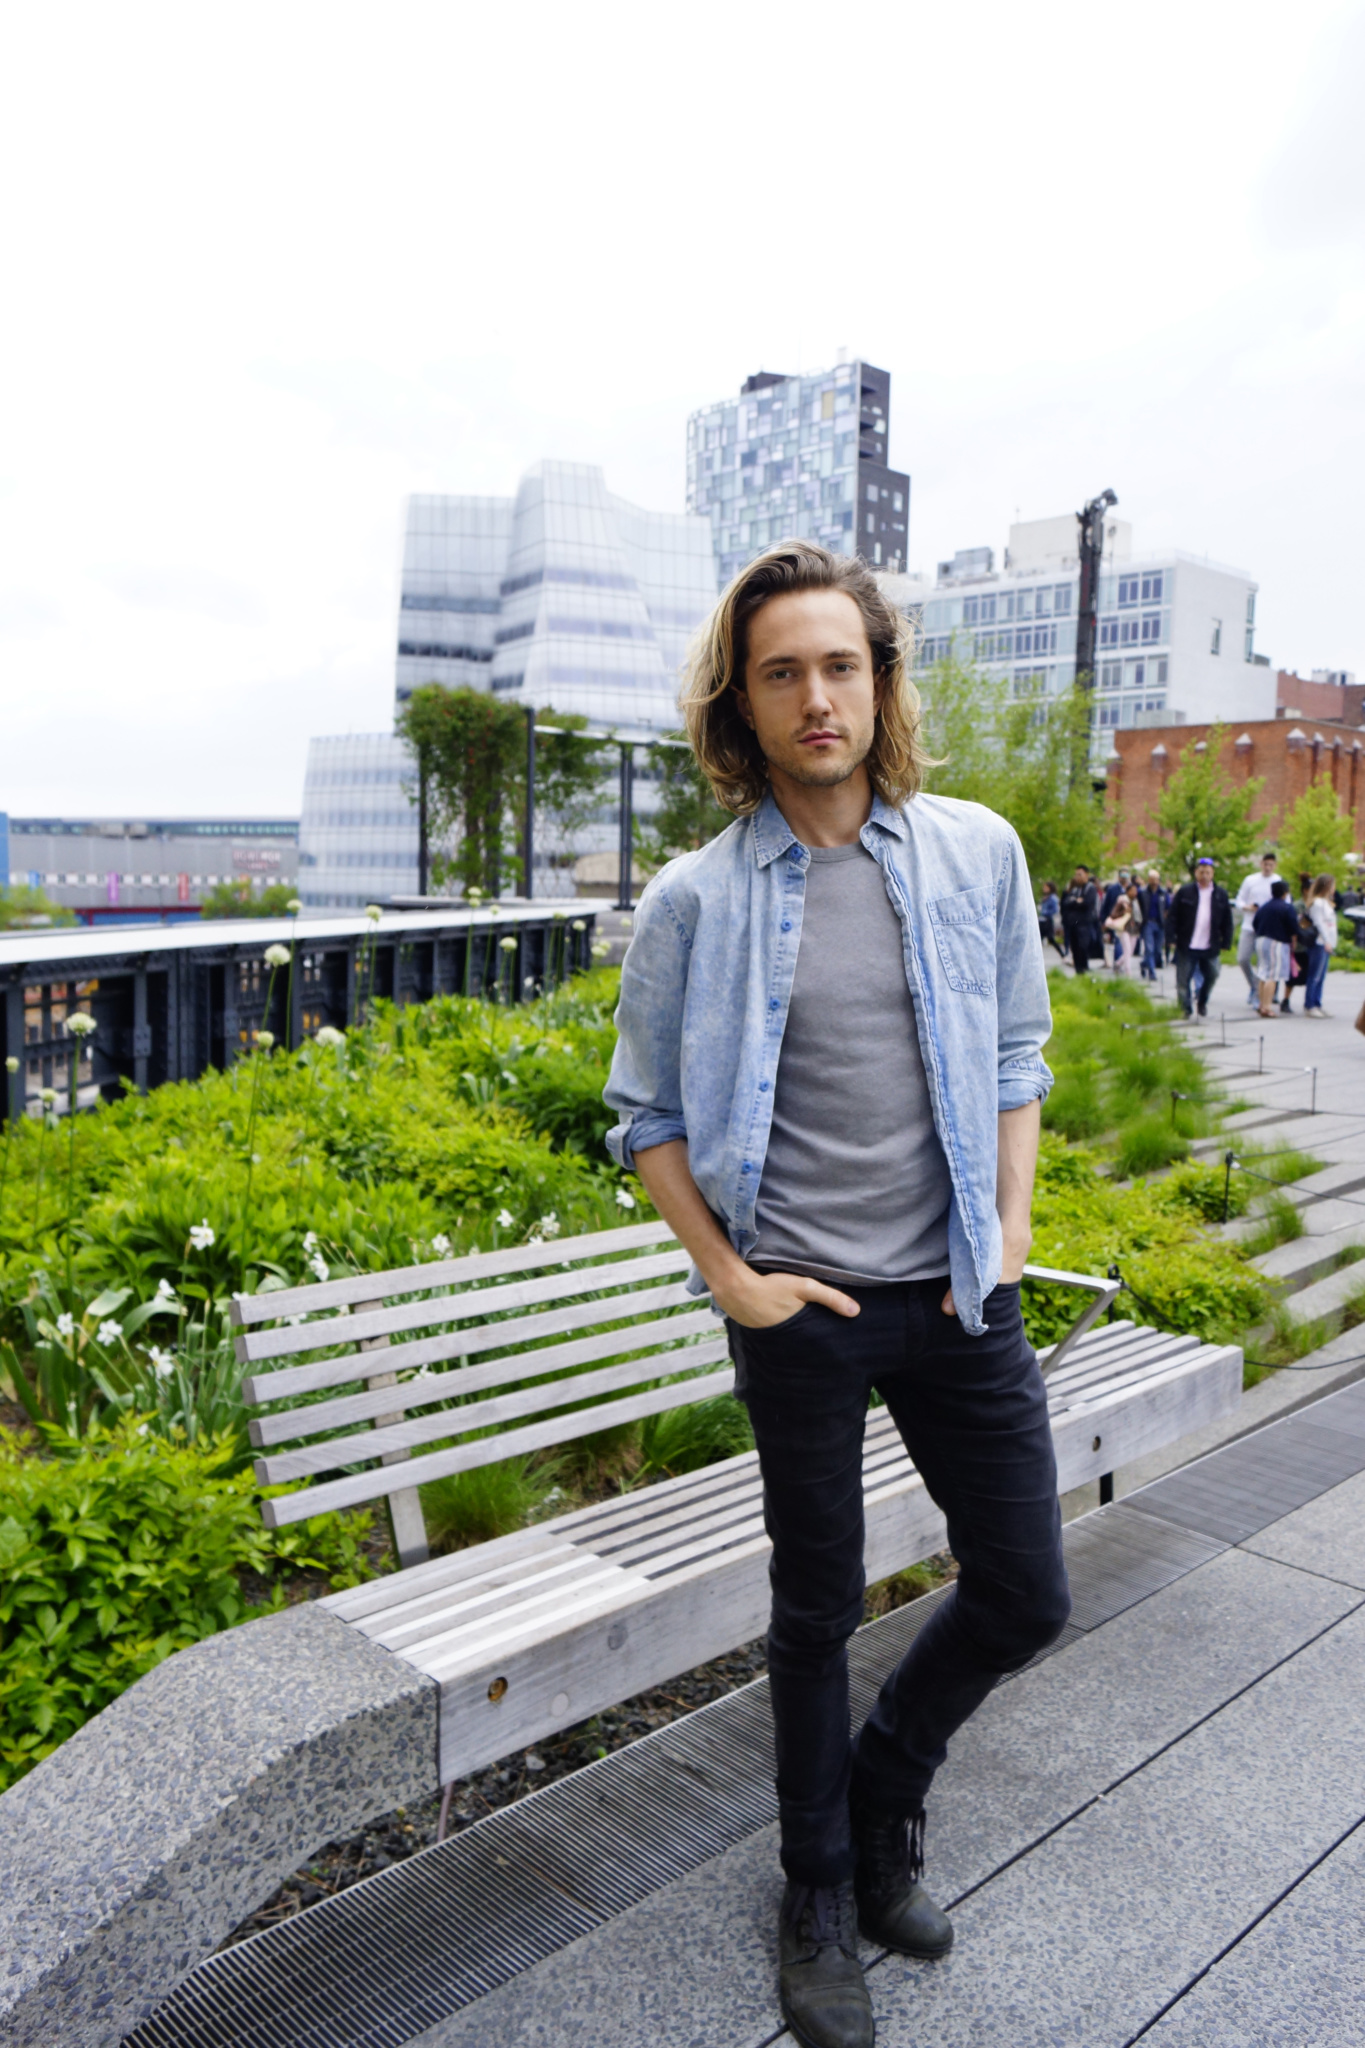 H & M - H&M Black Denim Super Skinny Jeans - H&M Washed Denim Shirt Light Denim Blue - Alternative 50/50 Keeper Tee Smoke - Steve Madden Troopah Black Leather Boot - Charles and A Half - Shop The Look - Brunch - Tipsy Parson - The Chelsea High Line - The High Line - New York City - NYC - TheKillerLook.com - The Killer Look